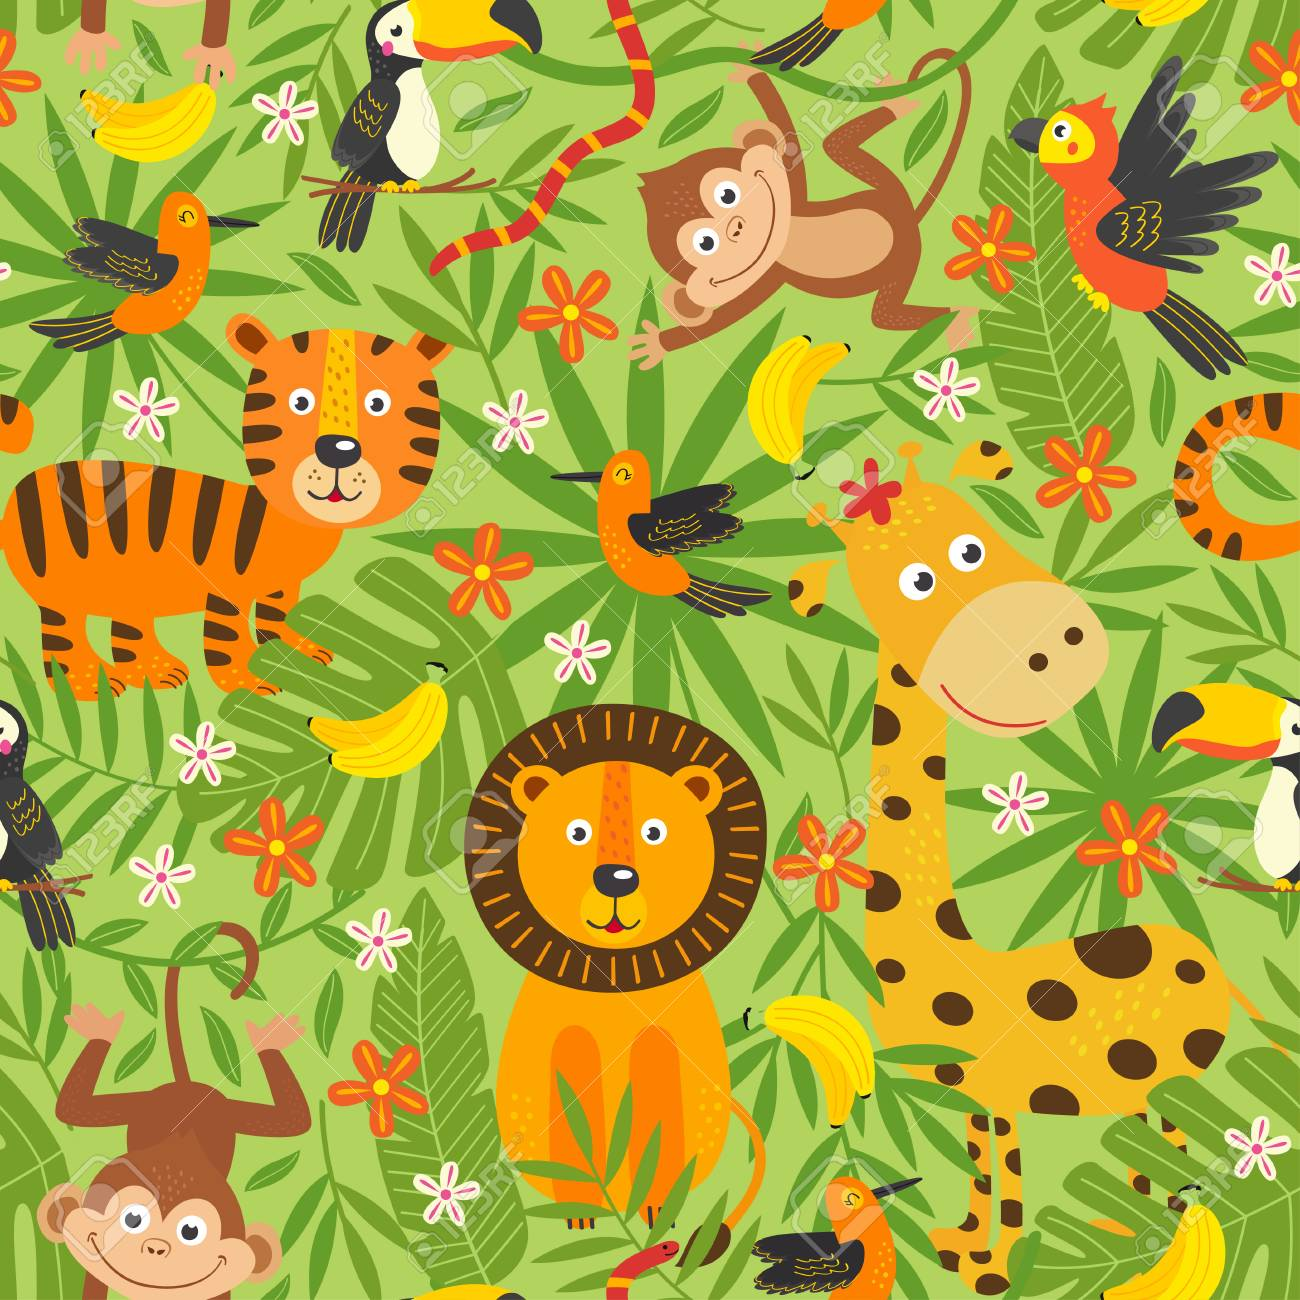 seamless pattern with jungle animals - vector illustration, eps - 104459655